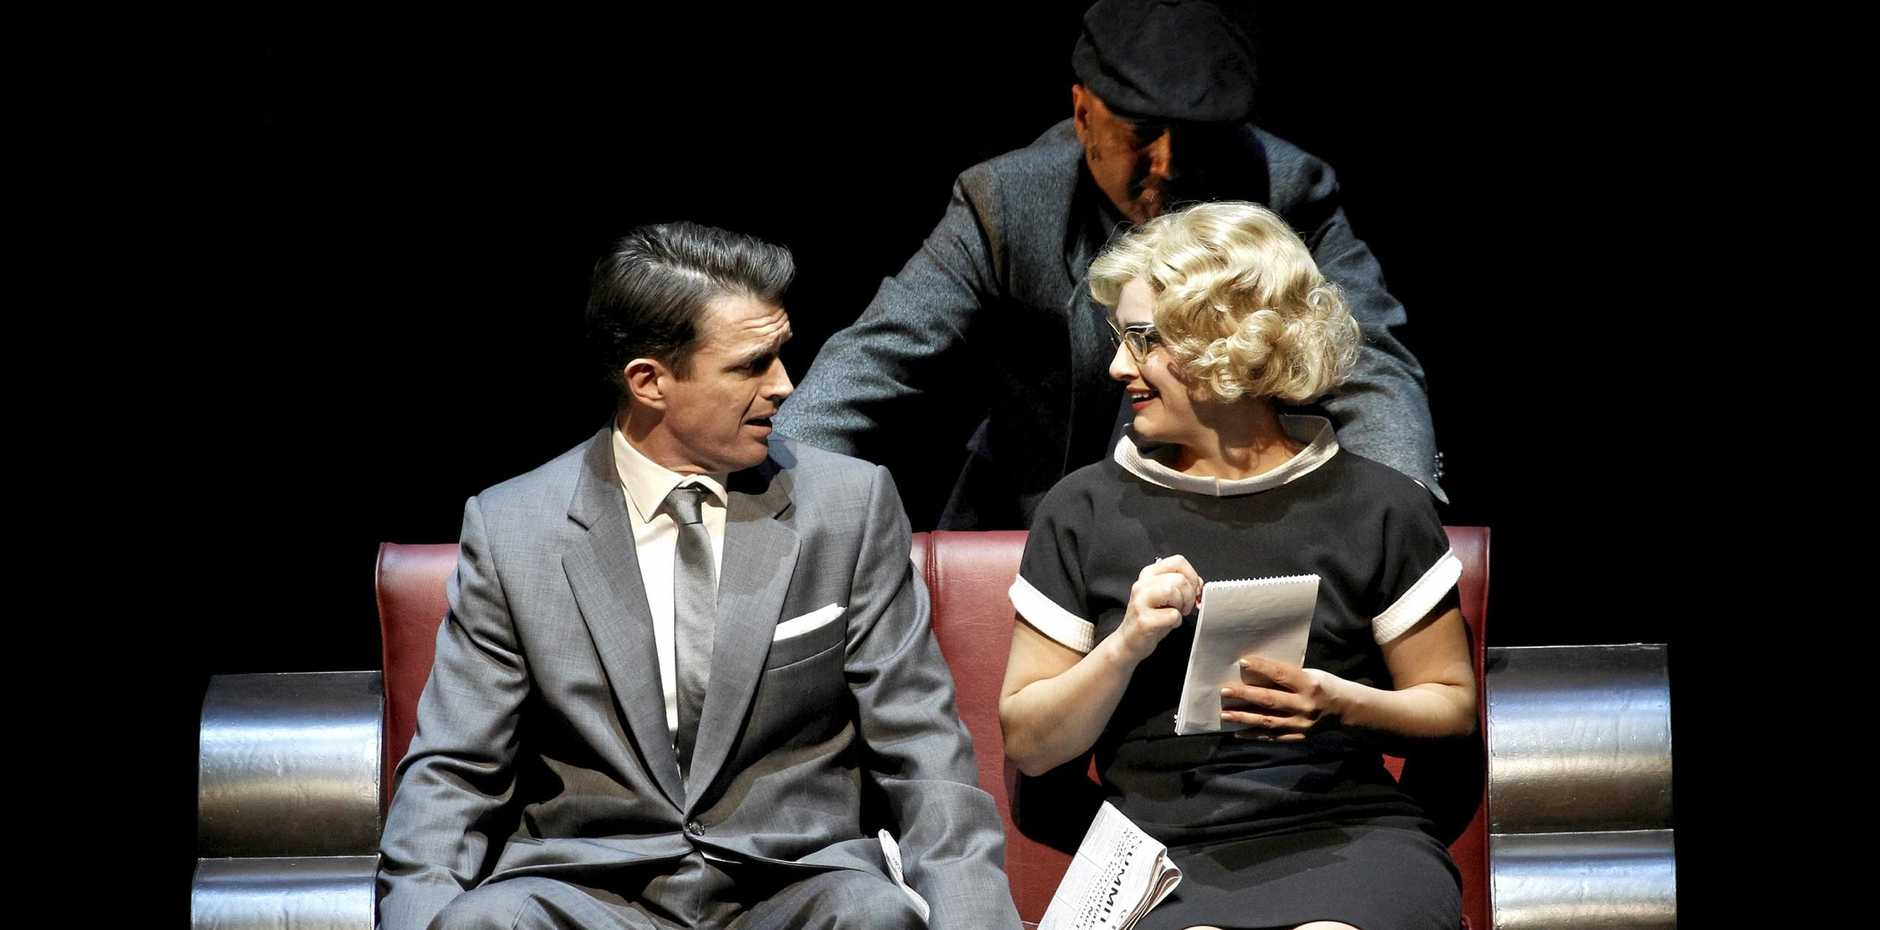 Matt Day and Amber McMahon in a scene from the play North by Northwest.